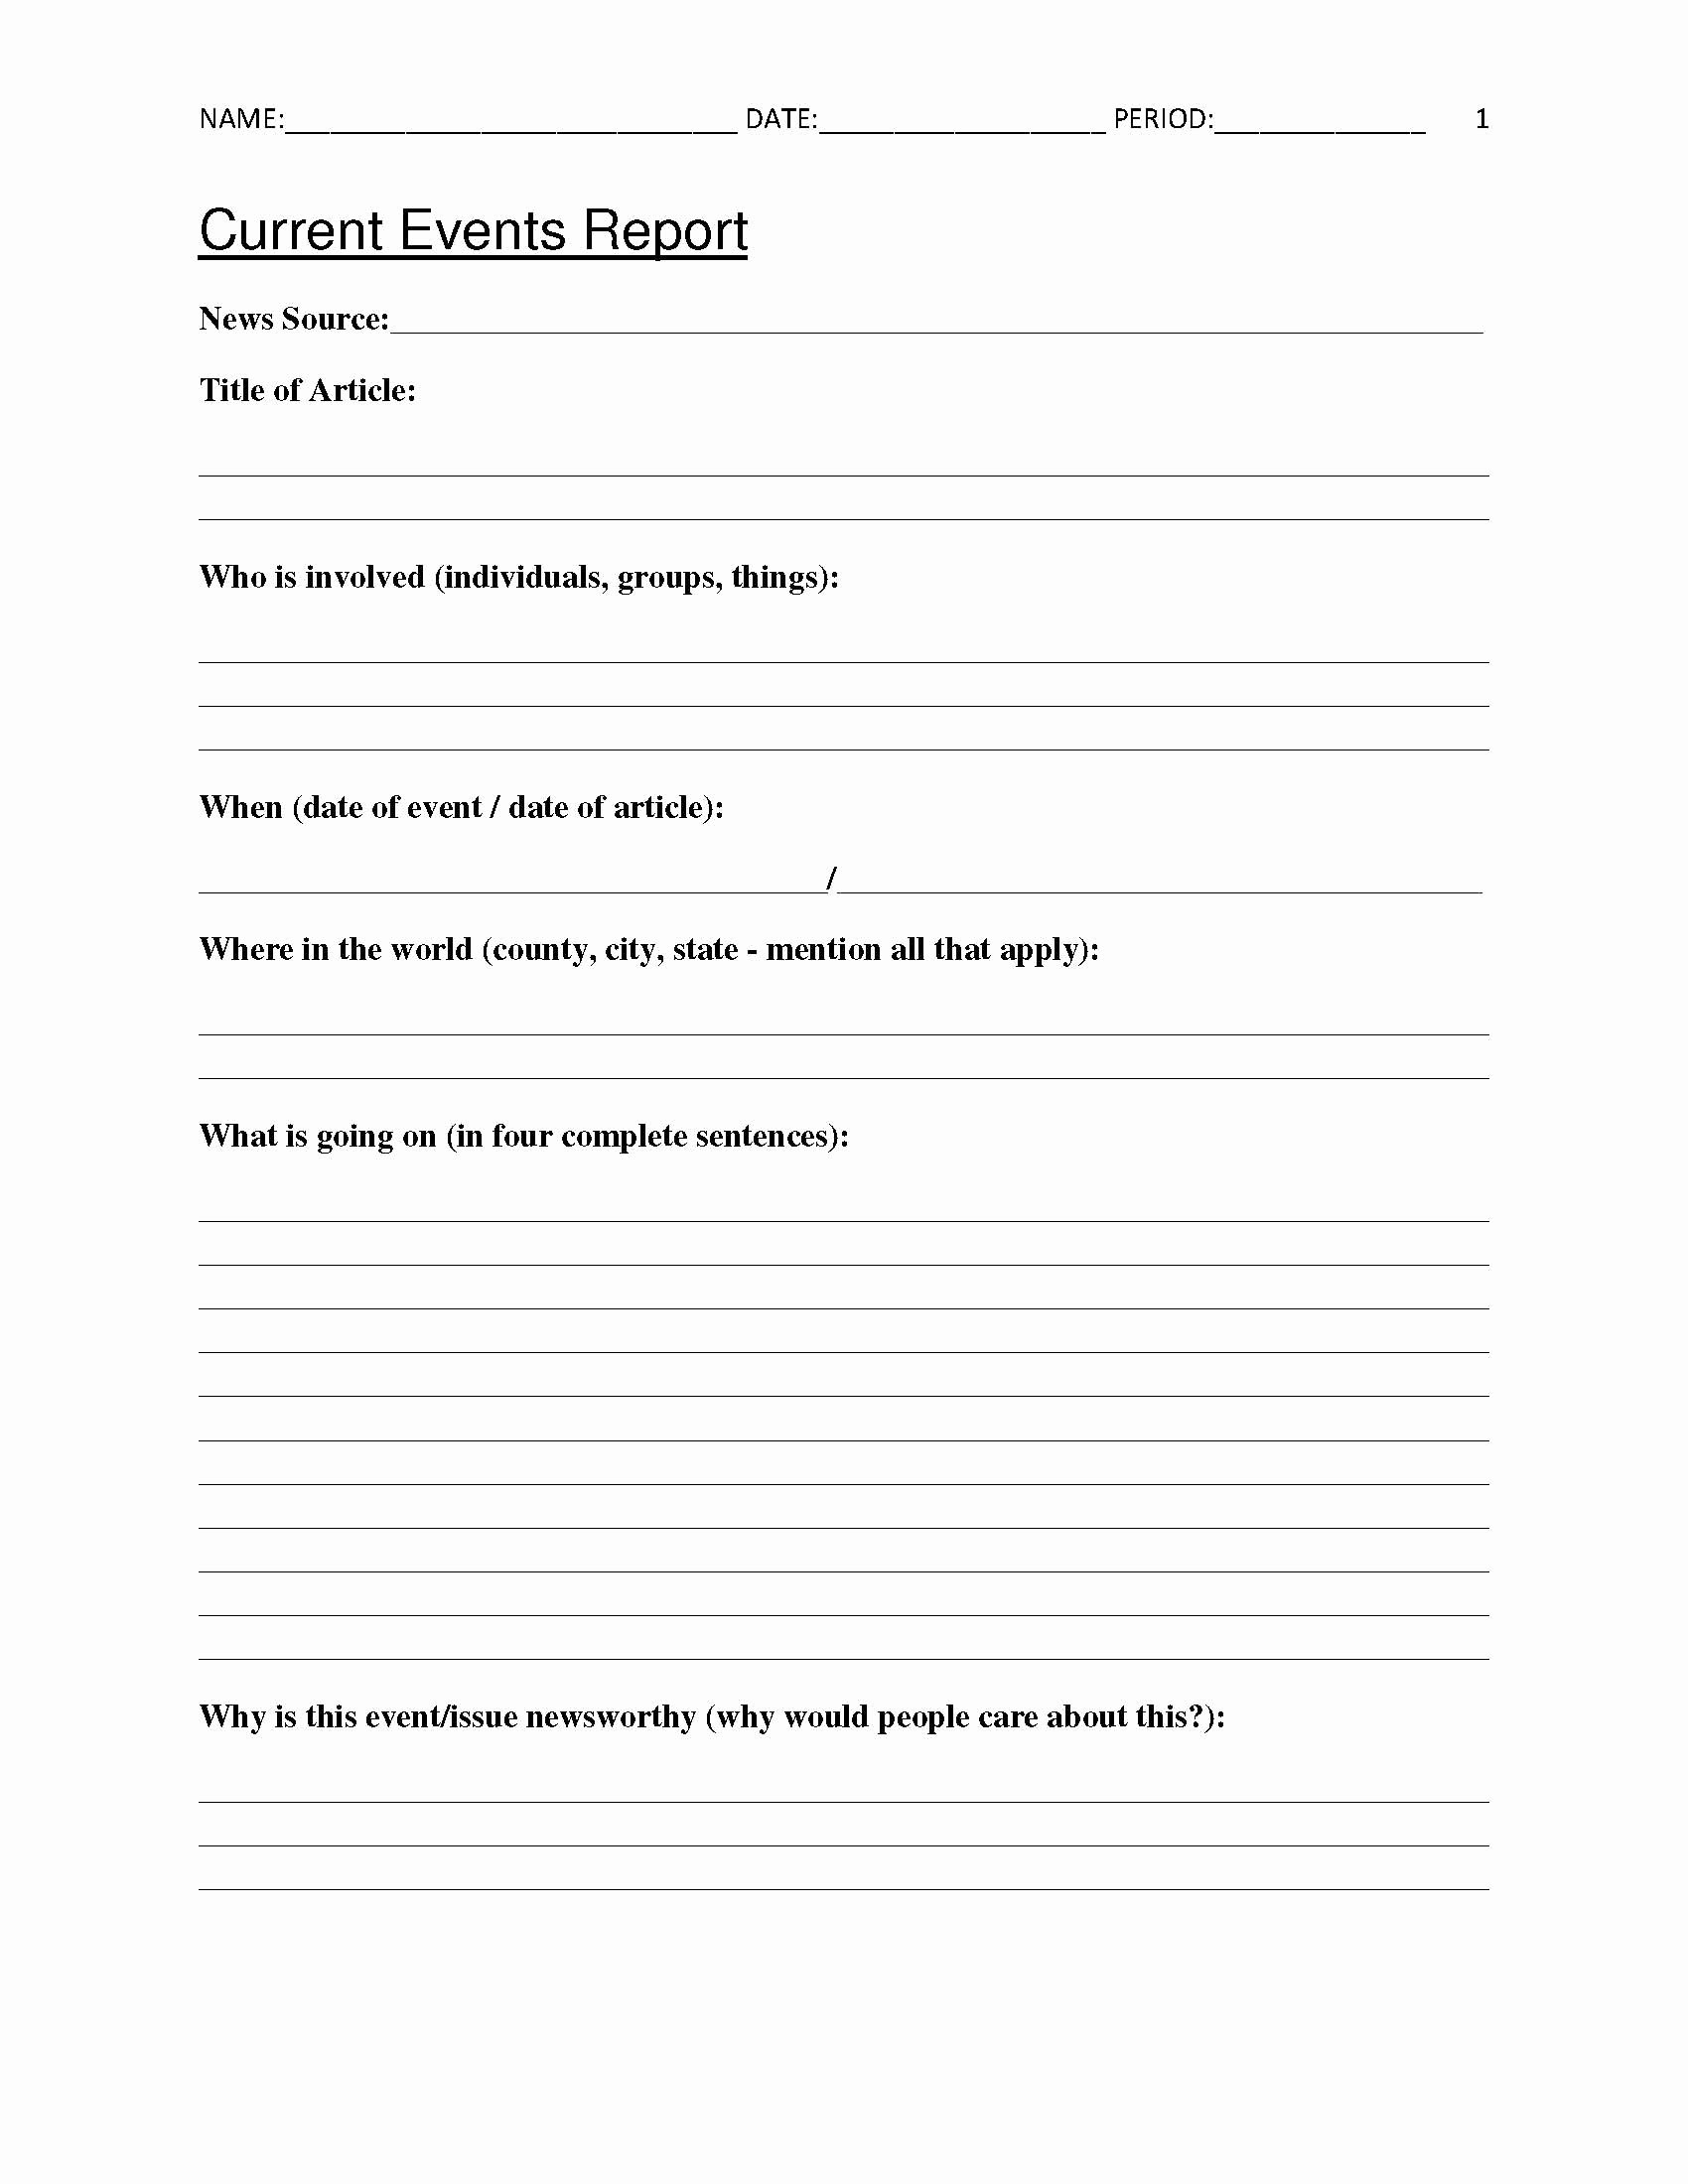 Current events Worksheet Pdf Unique Free Current events Report Worksheet for Classroom